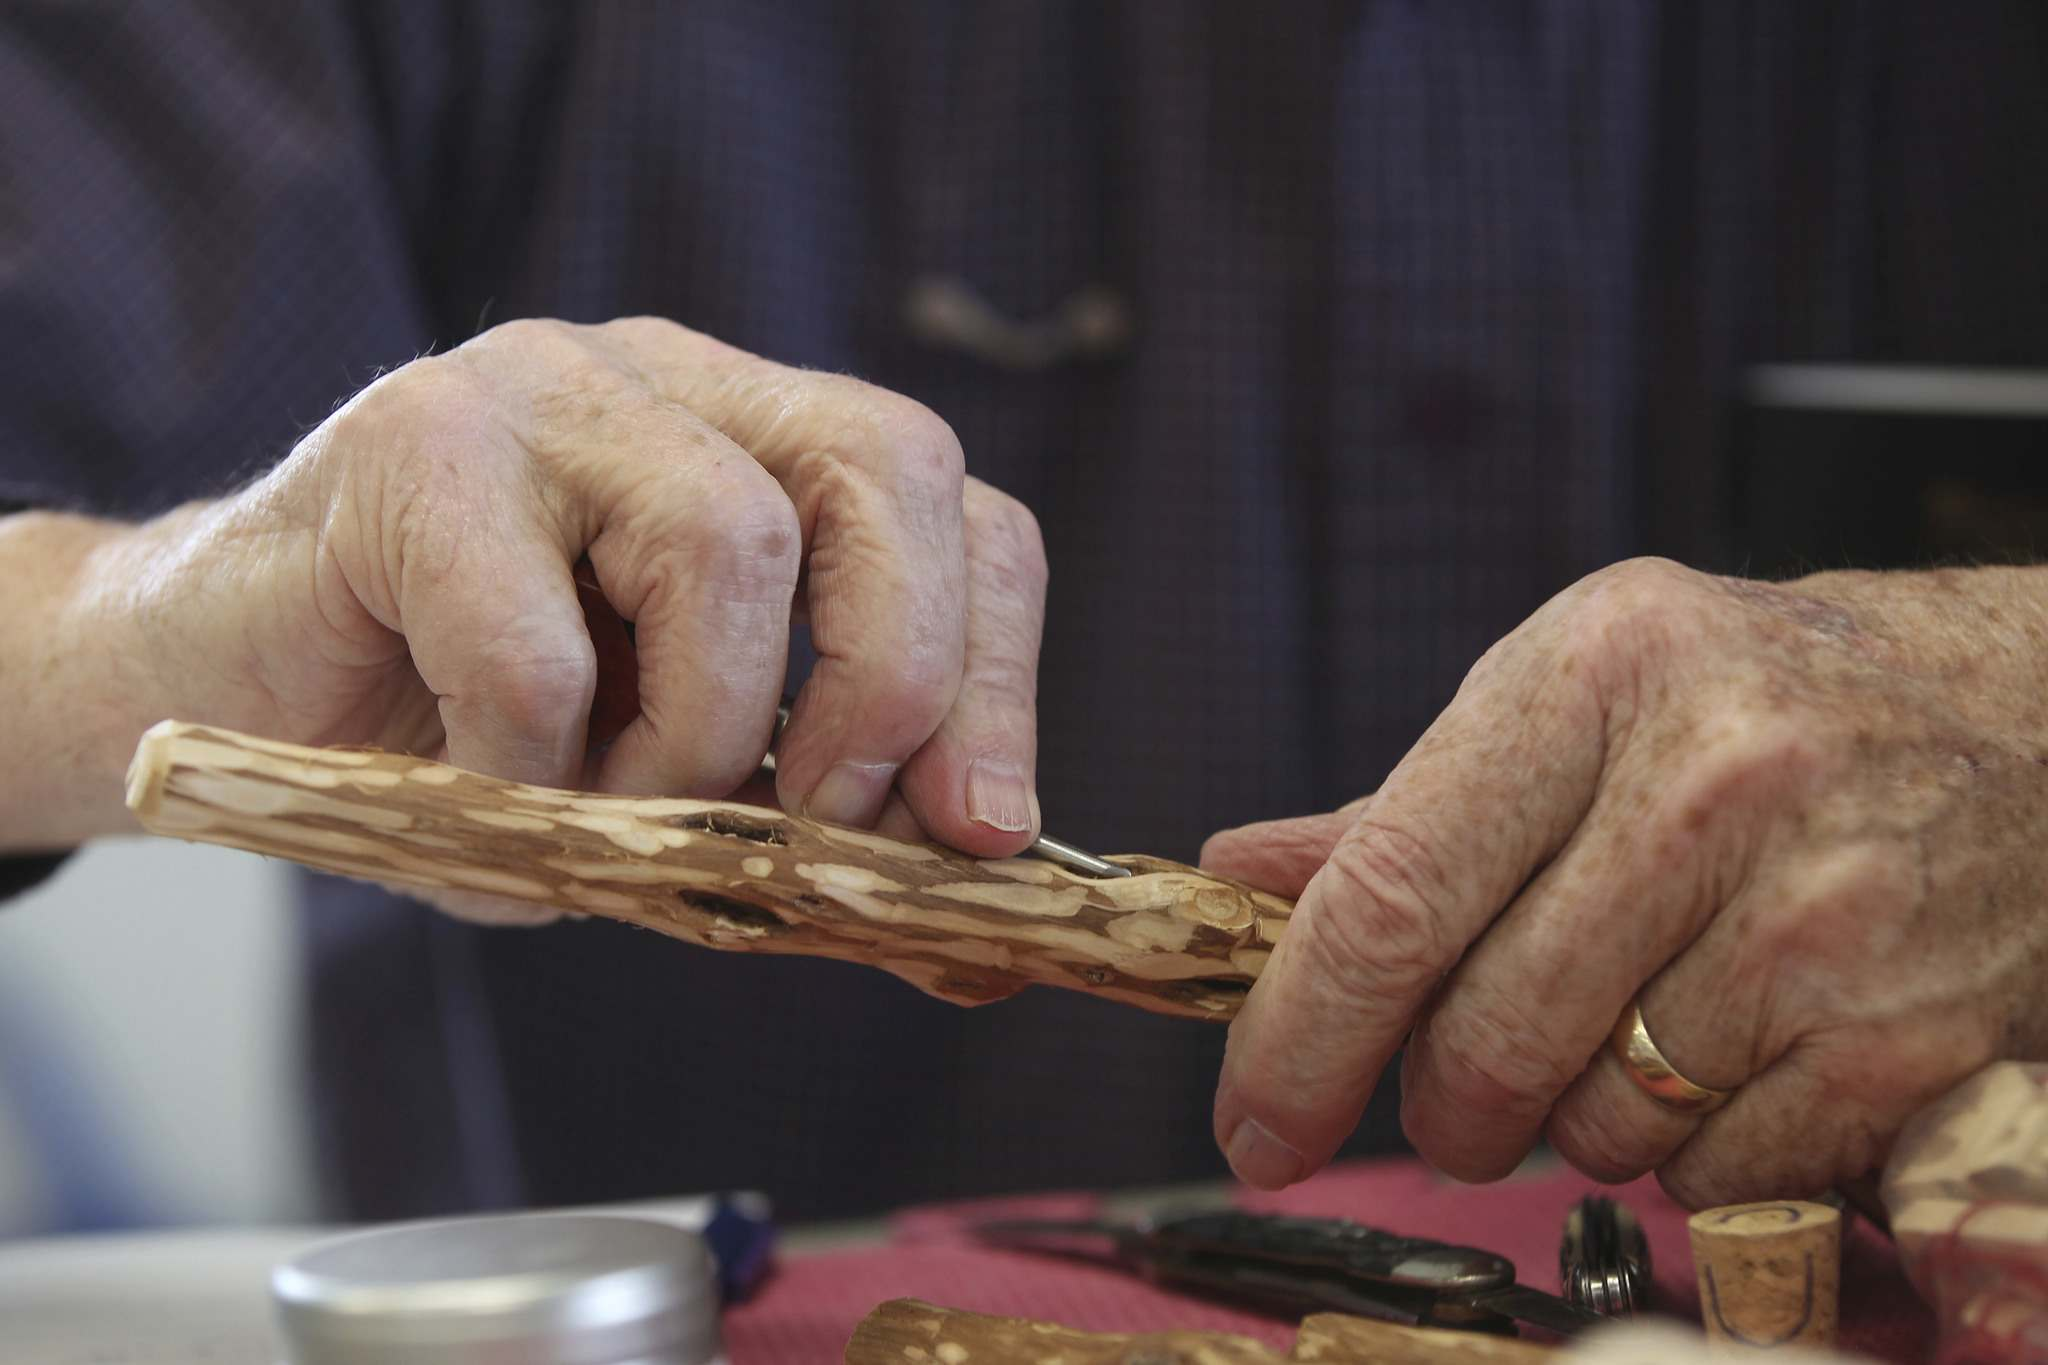 JOE BRYKSA / WINNIPEG FREE PRESS</p><p>Whittling is just one of the activities at the Winnipeg Men&rsquo;s Shed.</p>